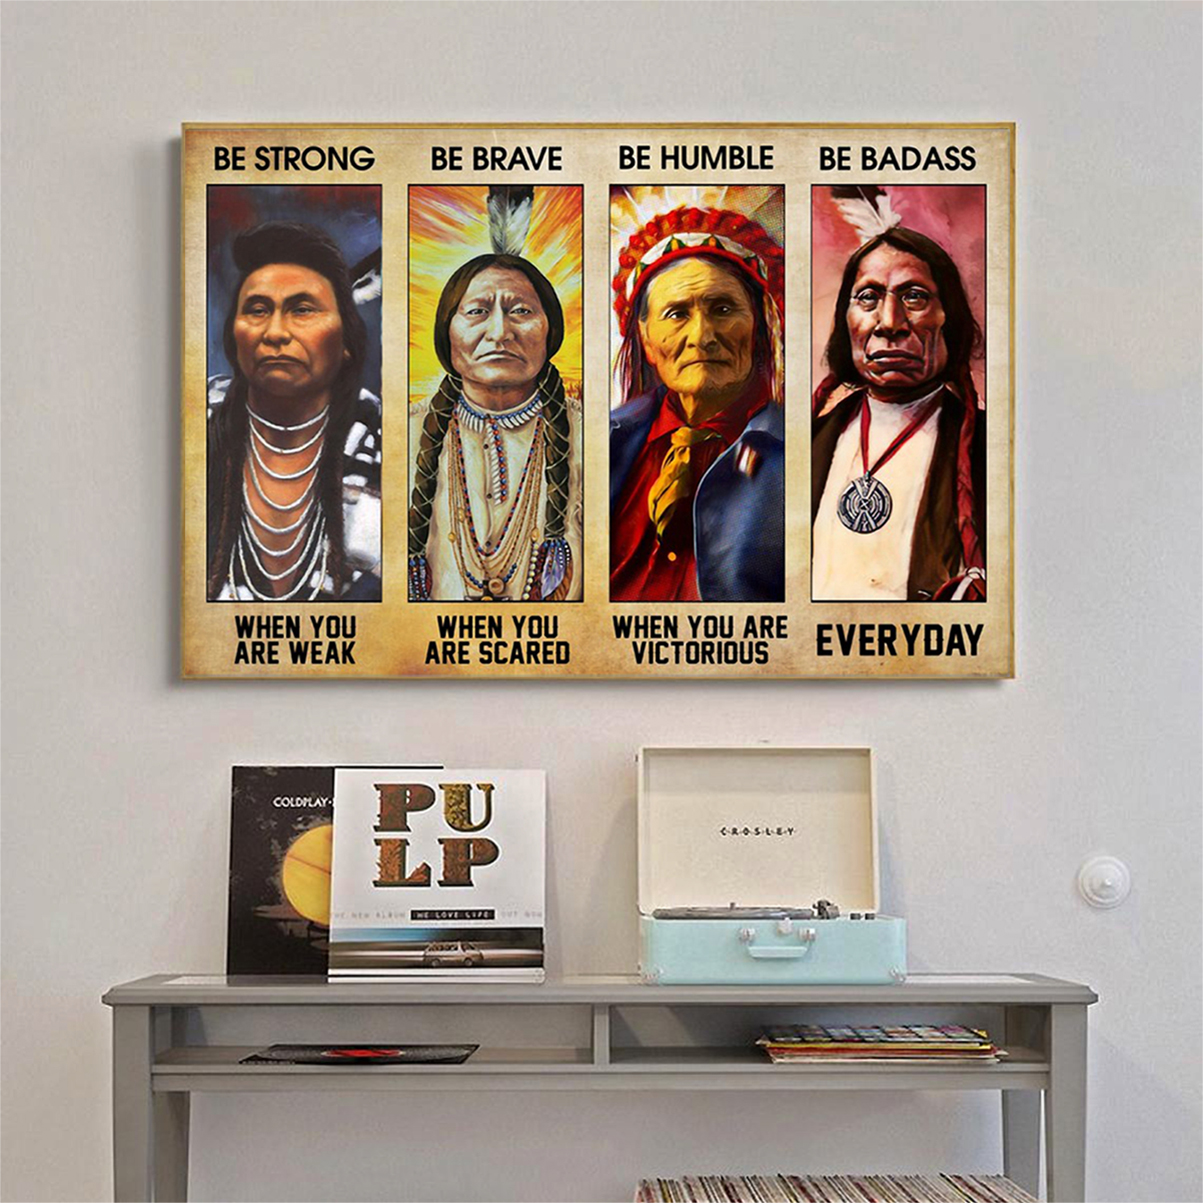 Native american be strong be brave be humble be badass poster A3